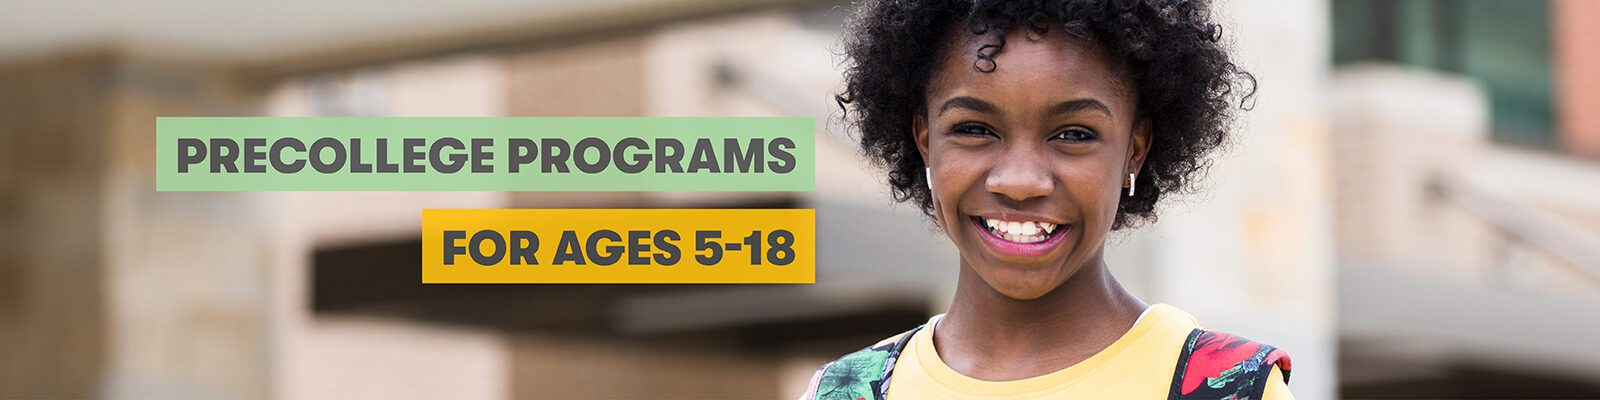 "Happy middle school age girl stands in front of school. Text overlay says ""Precollege Programs for ages 5-18."""